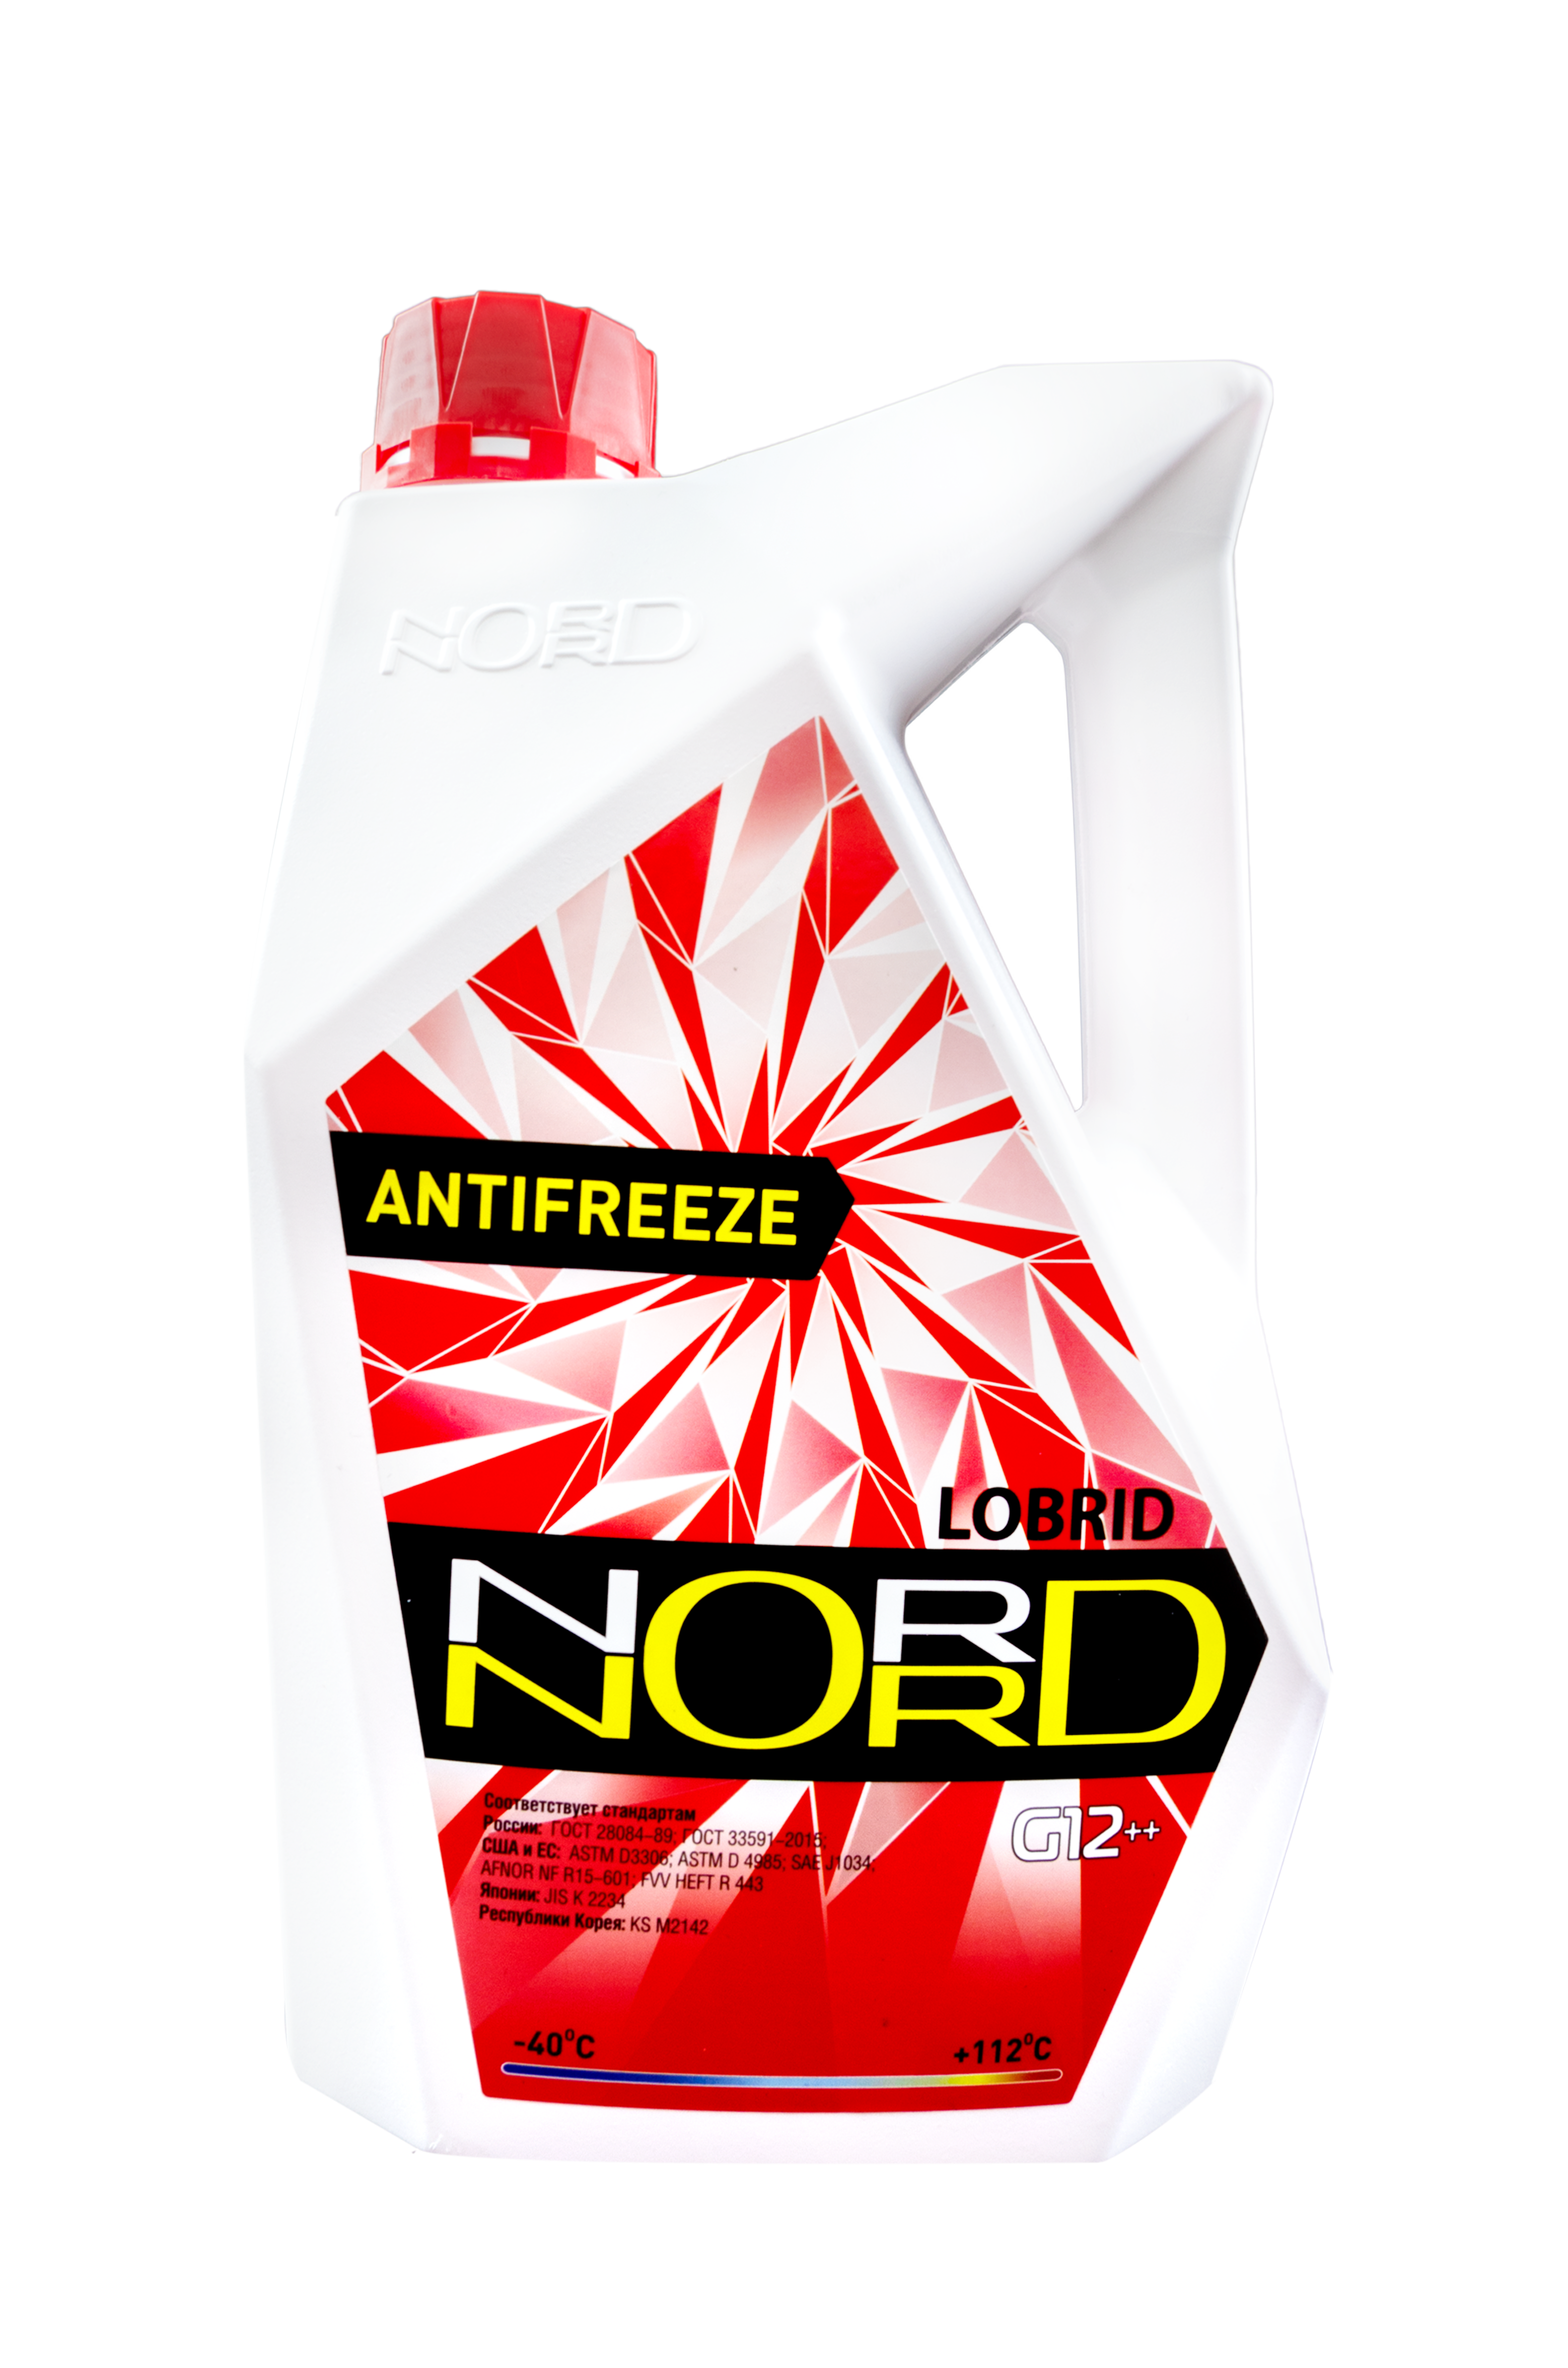 nord NR22243 Антифриз NORD High Quality Antifreeze готовый -40C красный 3 кг